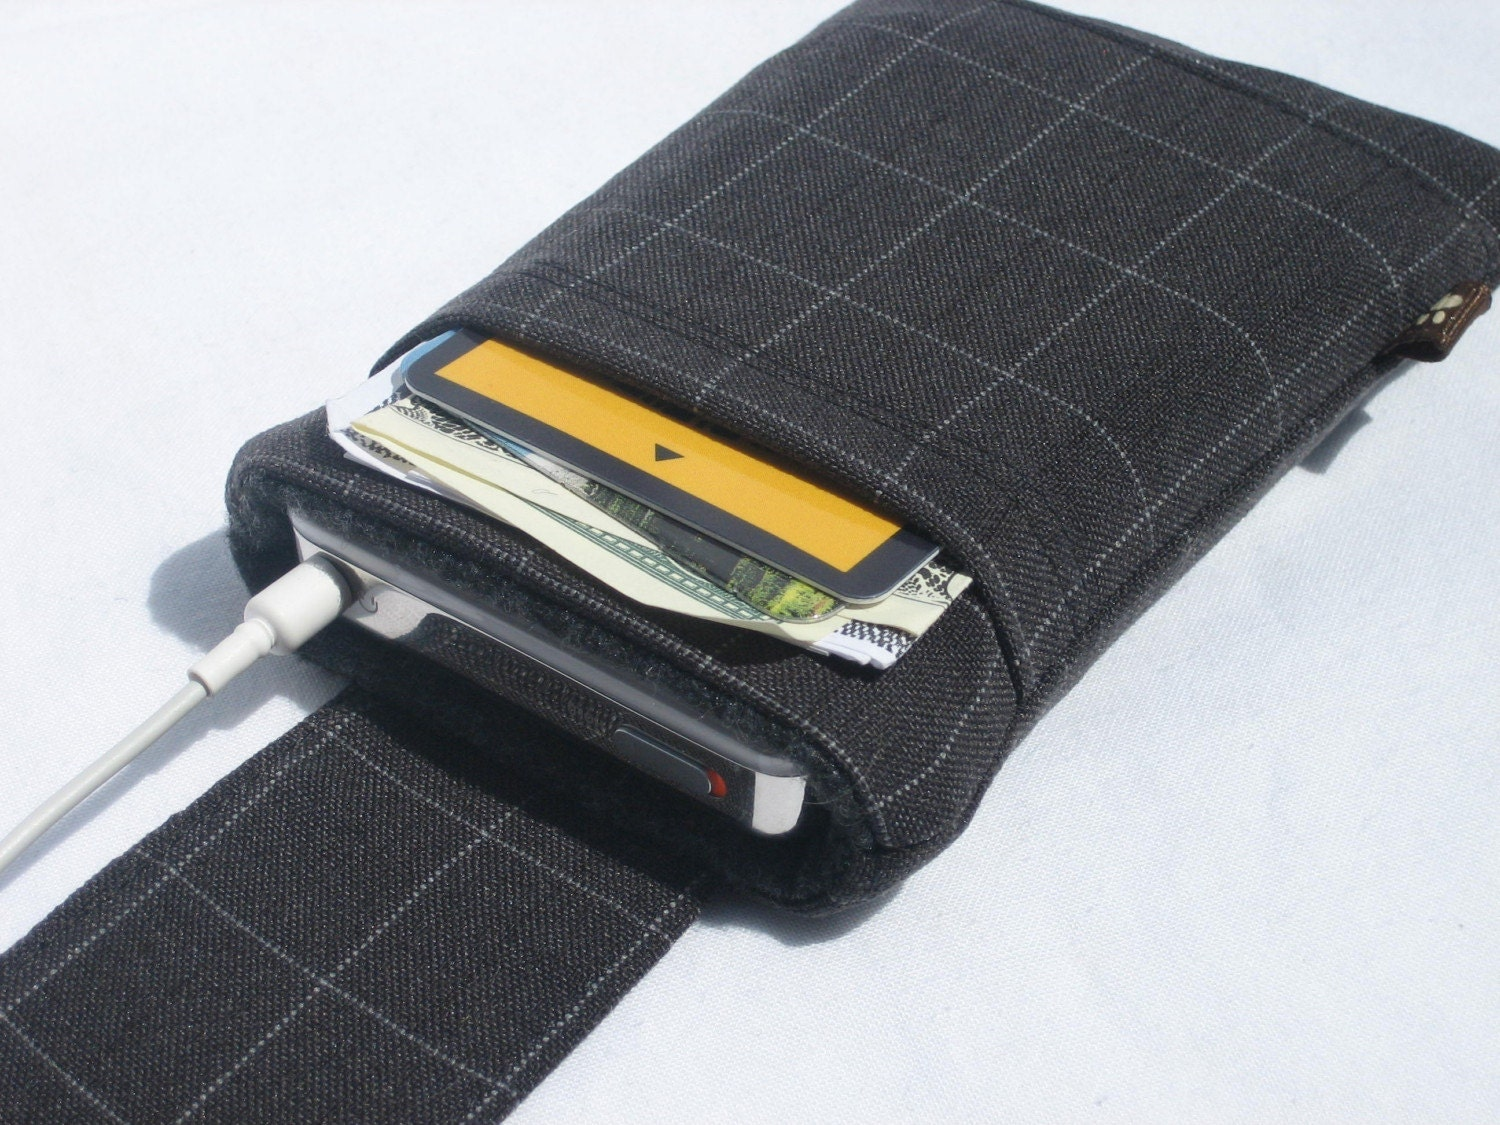 Neck Strap Case For Iphone Ipod Itouch With Flap Closure And